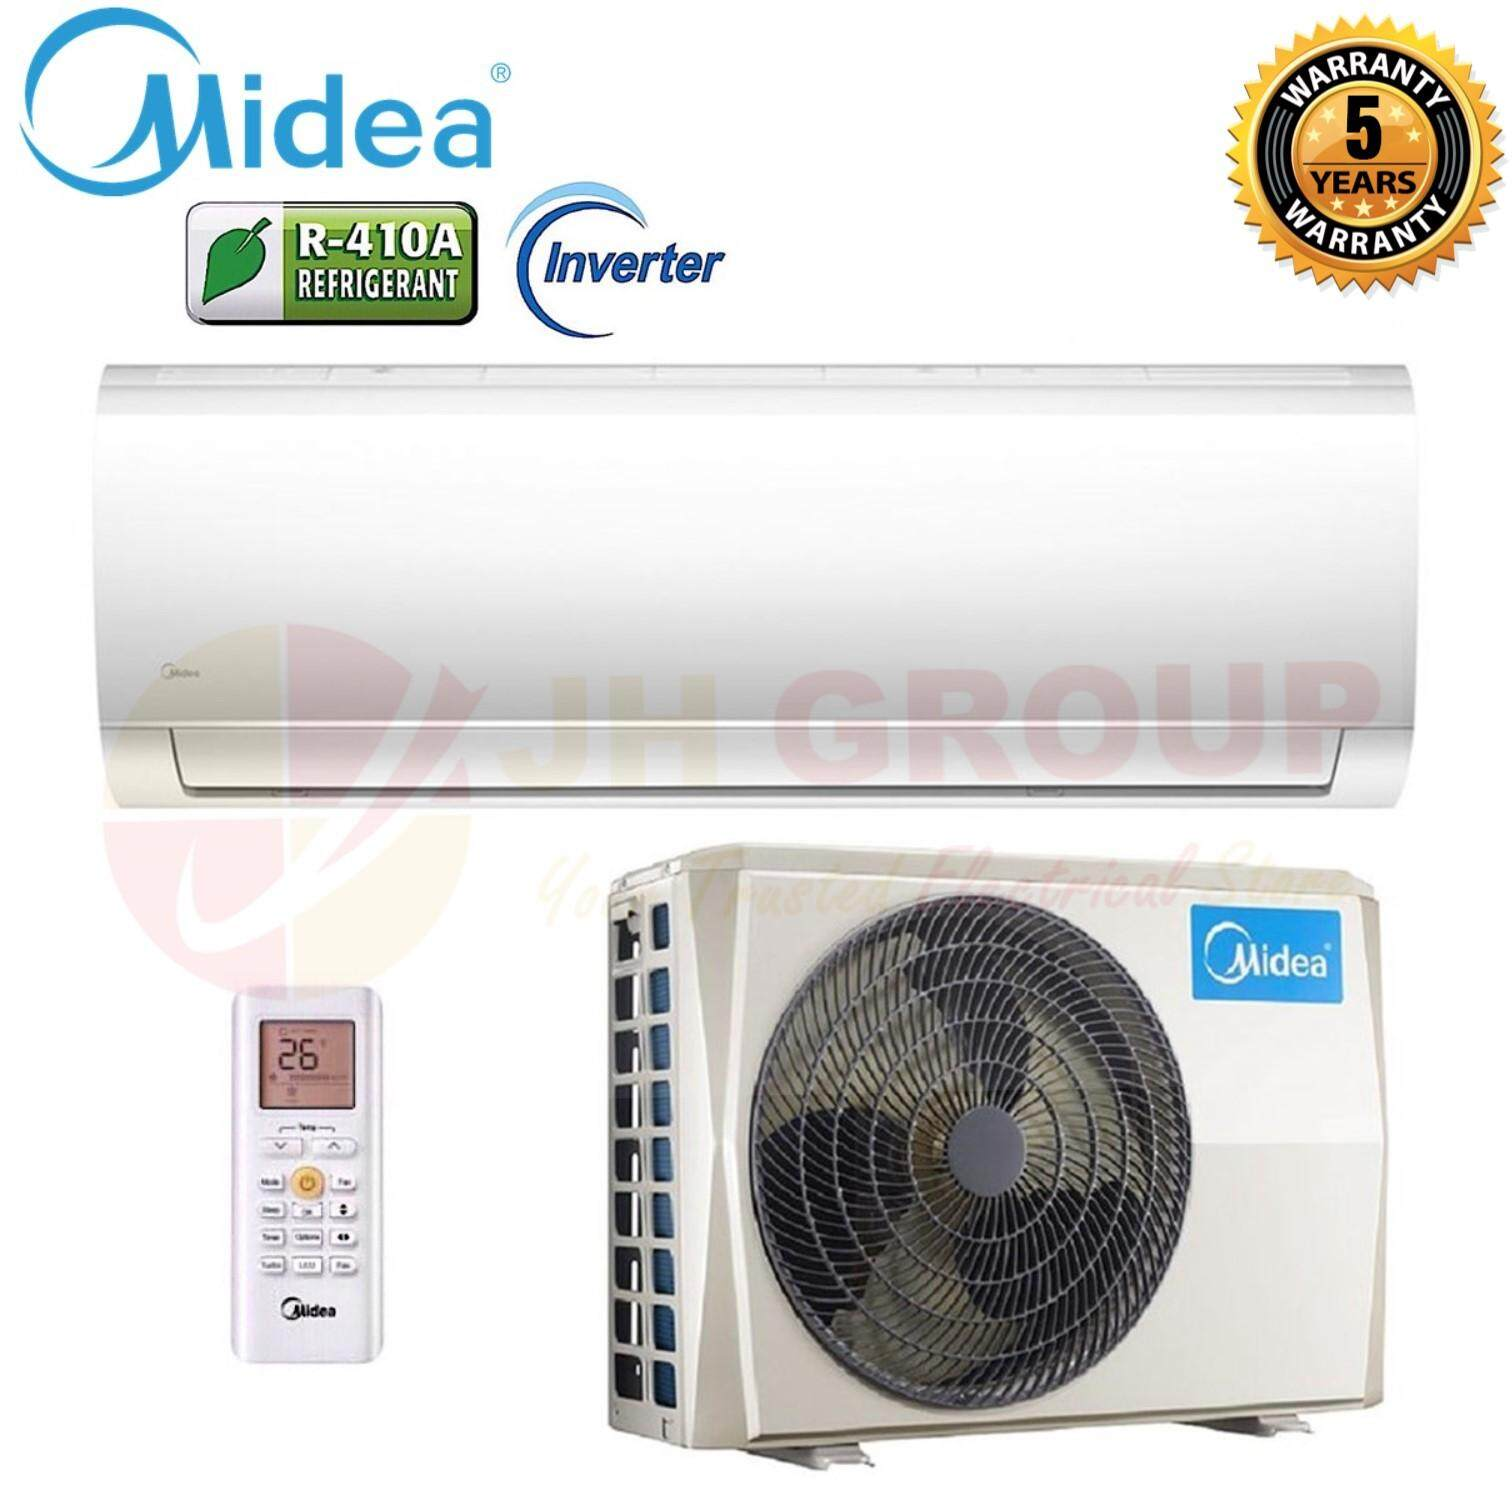 MIDEA MSMA-12CRDN1 1.5HP INVERTER WALL MOUNTED SPLIT AIR CONDITIONER with SUPER IONIZER SMART CONTROL